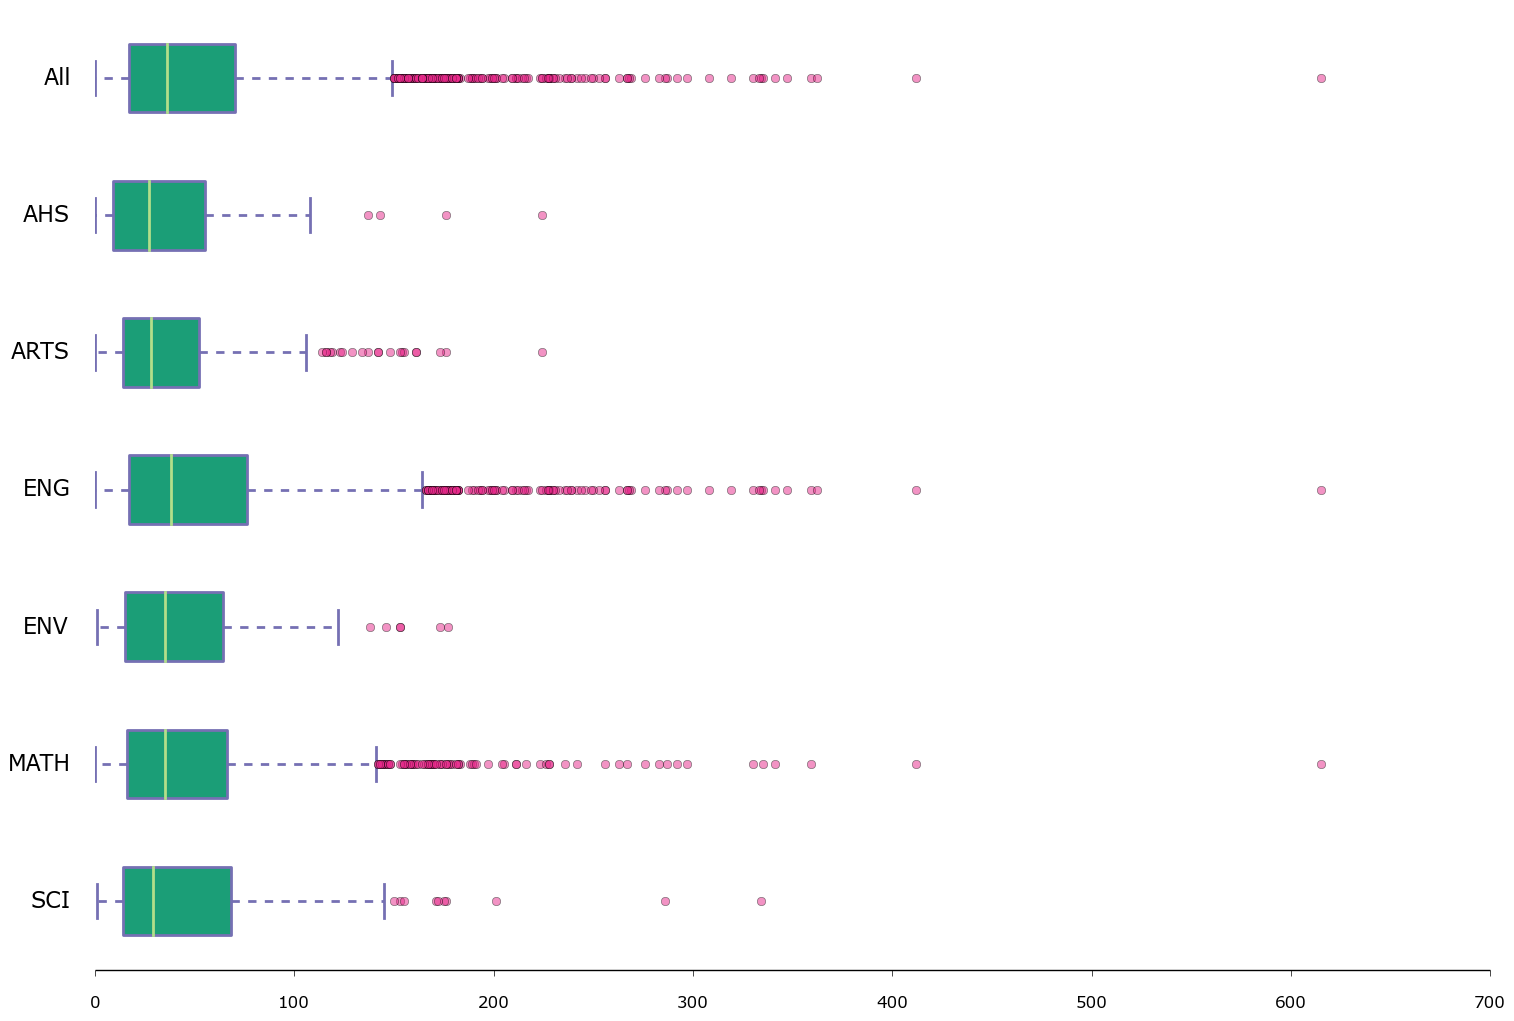 Boxplot of the amount of applications by faculty, including outliers